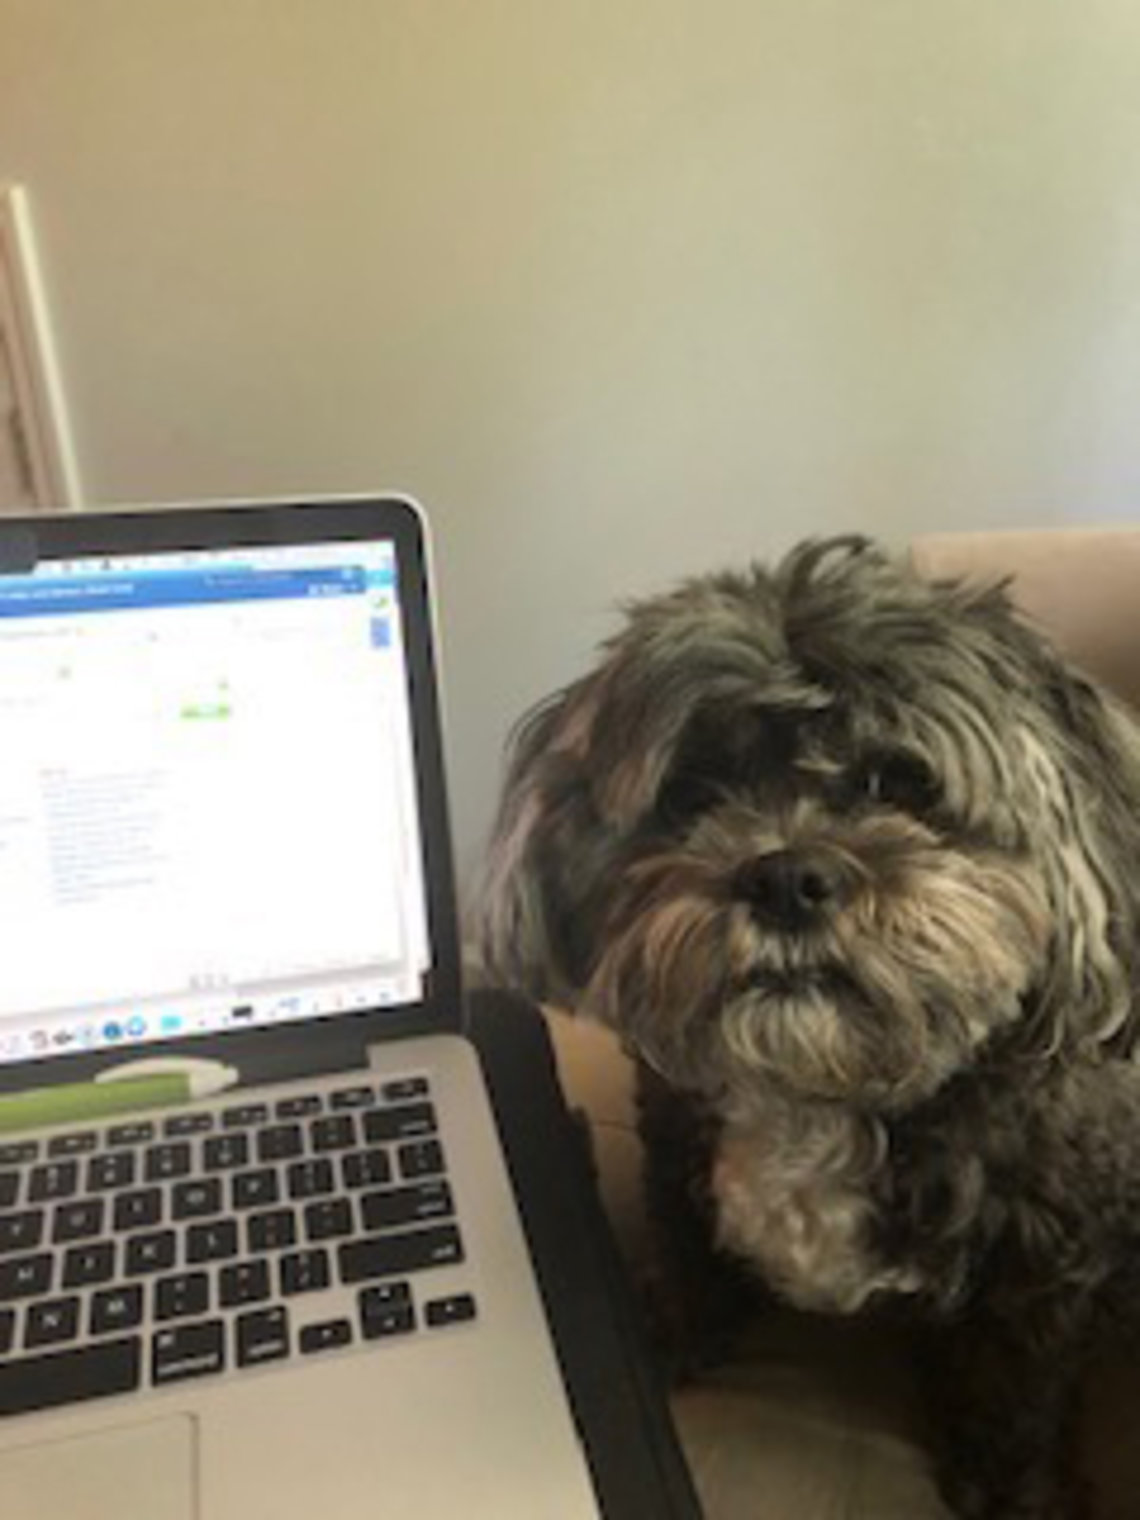 A dog sits next to a laptop screen